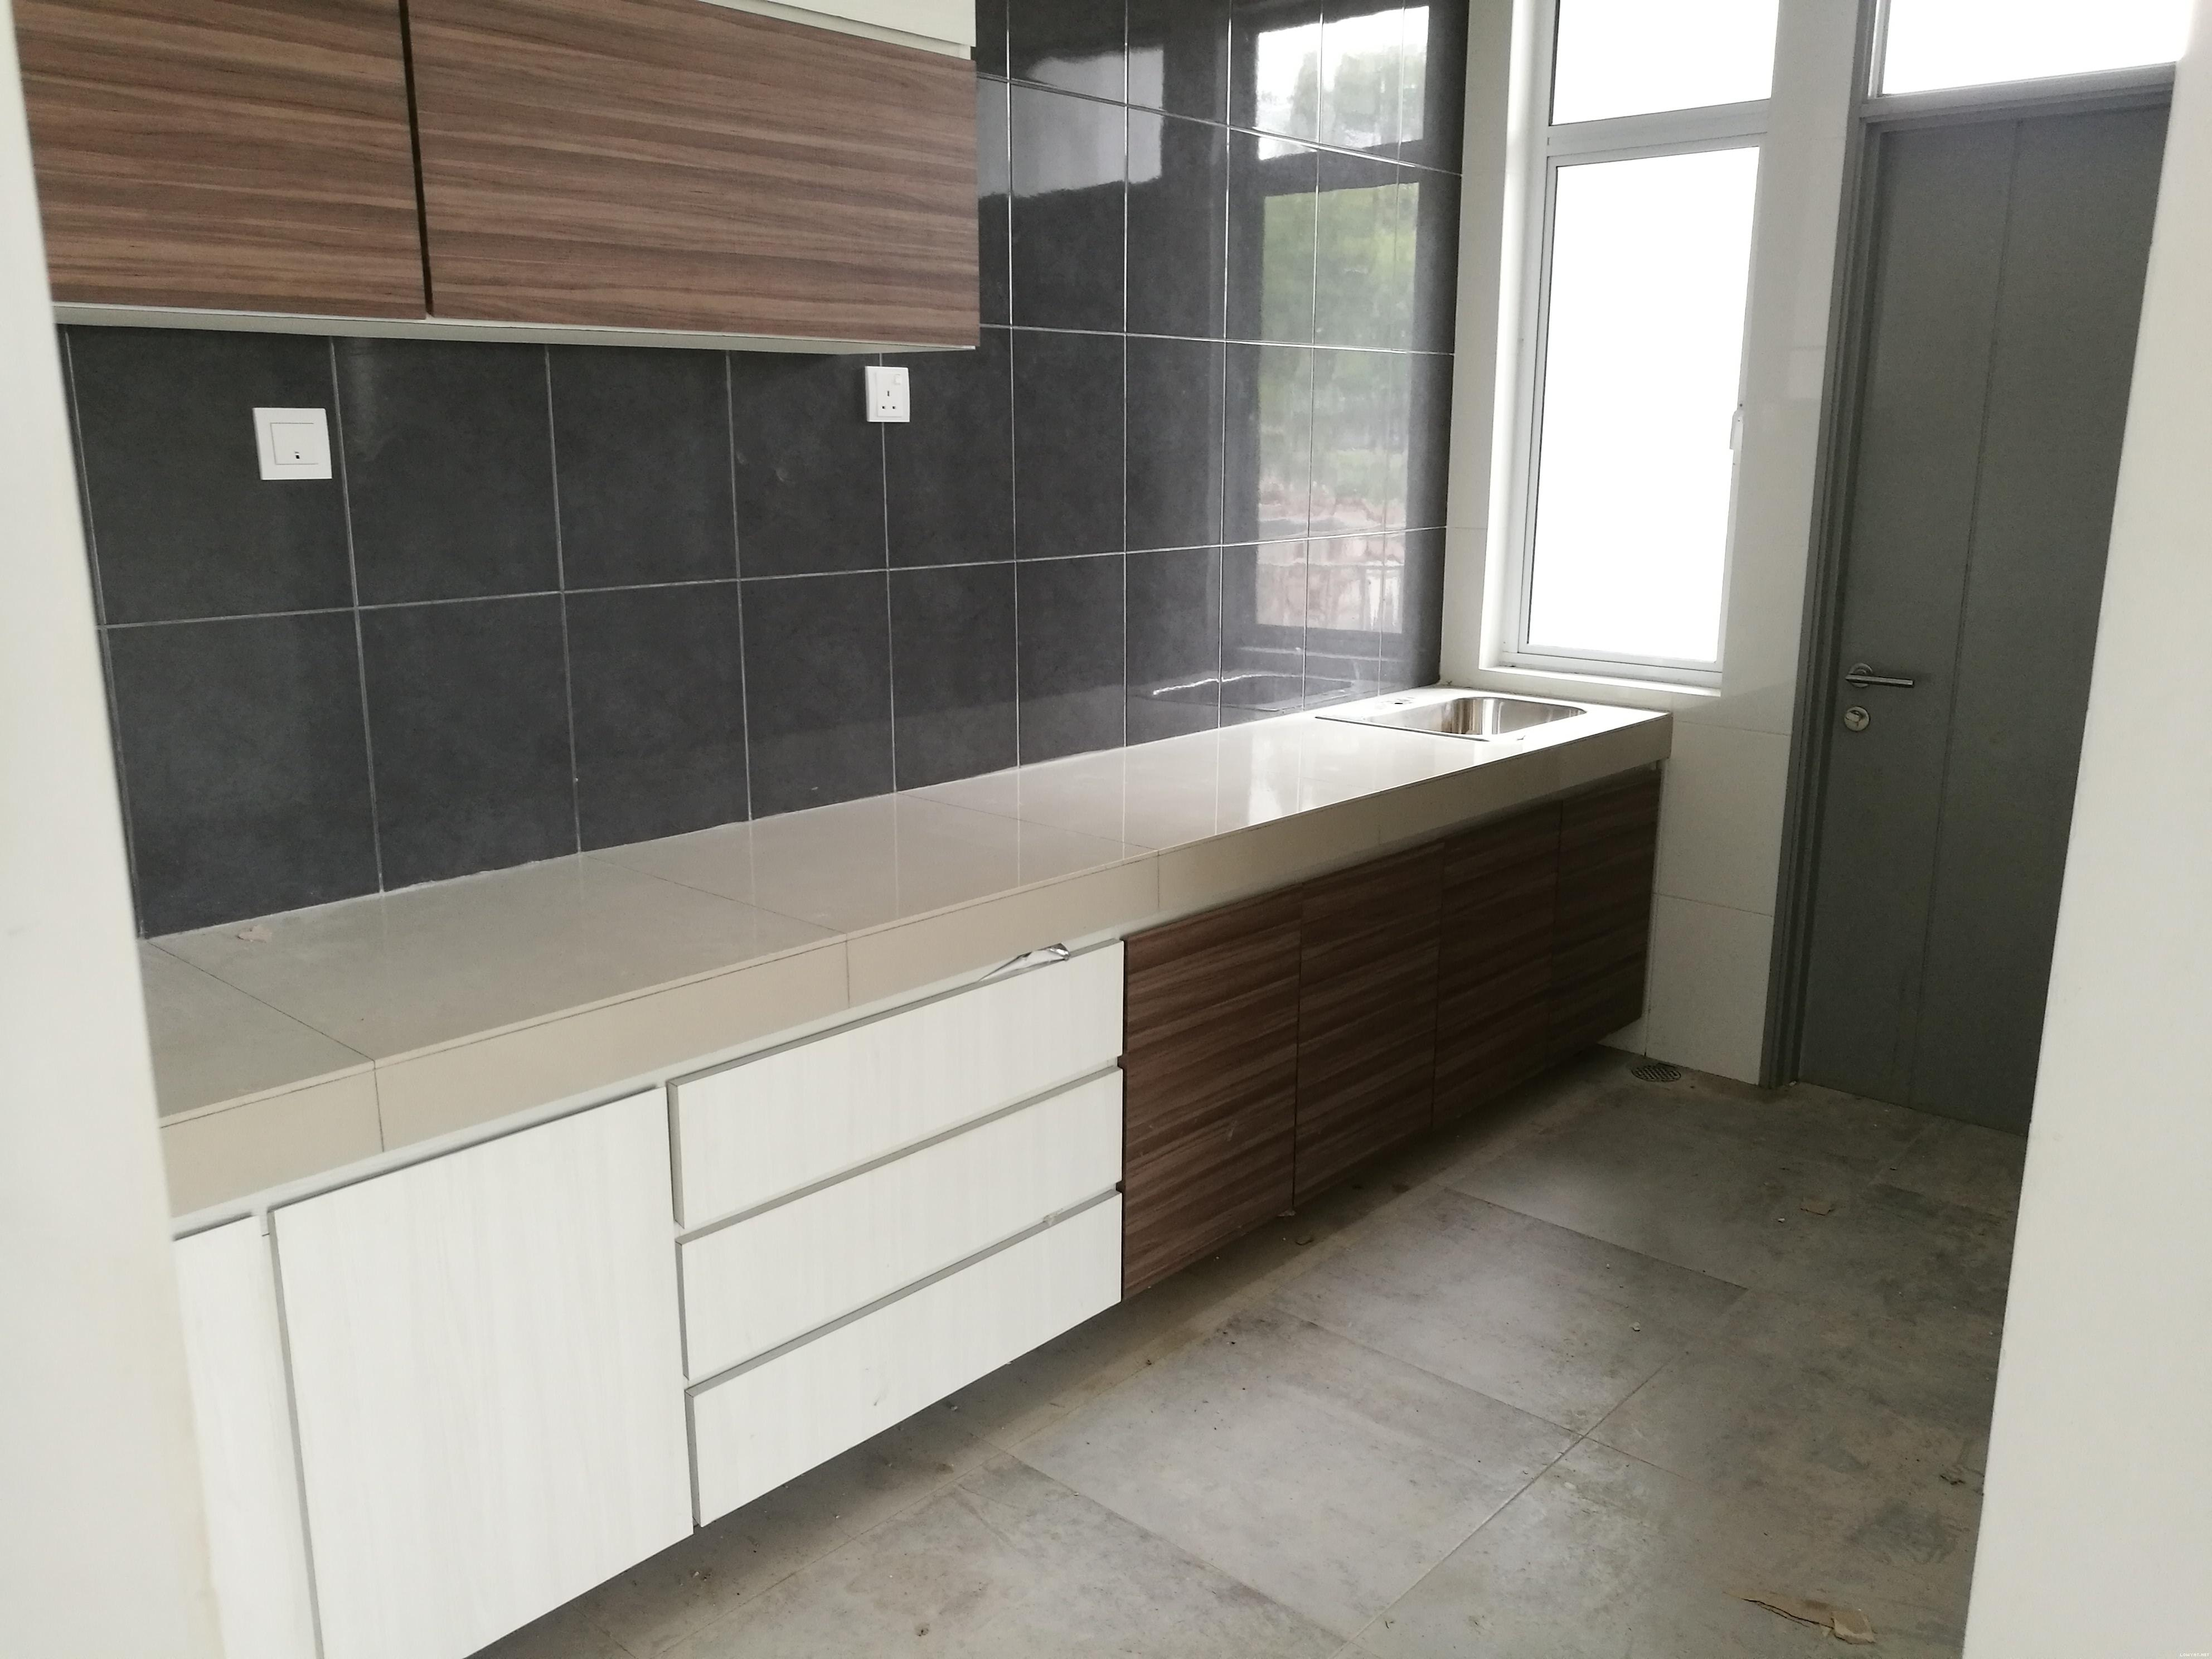 Starting At Rm280k For 800sq Feet Very Attractive And Interior Also Nice Design Location Is Good As Well